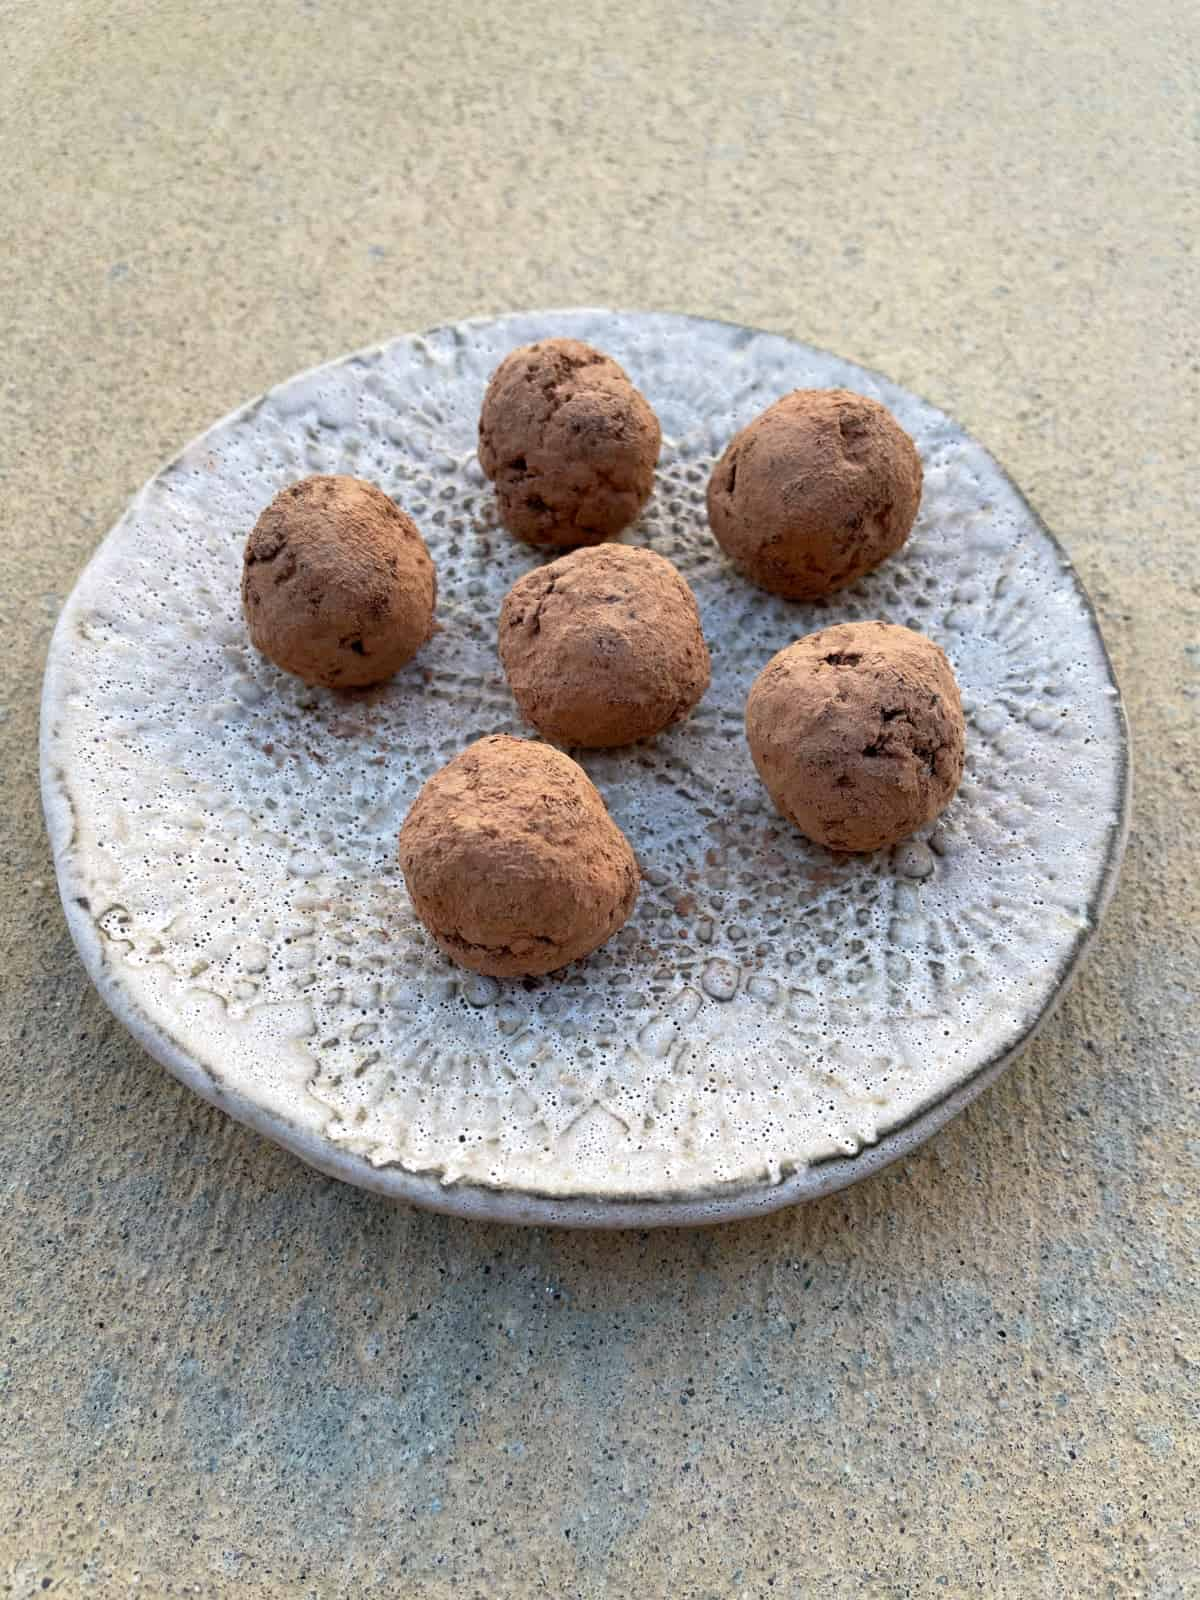 Cranberry chocolate truffles coated in cocoa powder on ceramic plate.